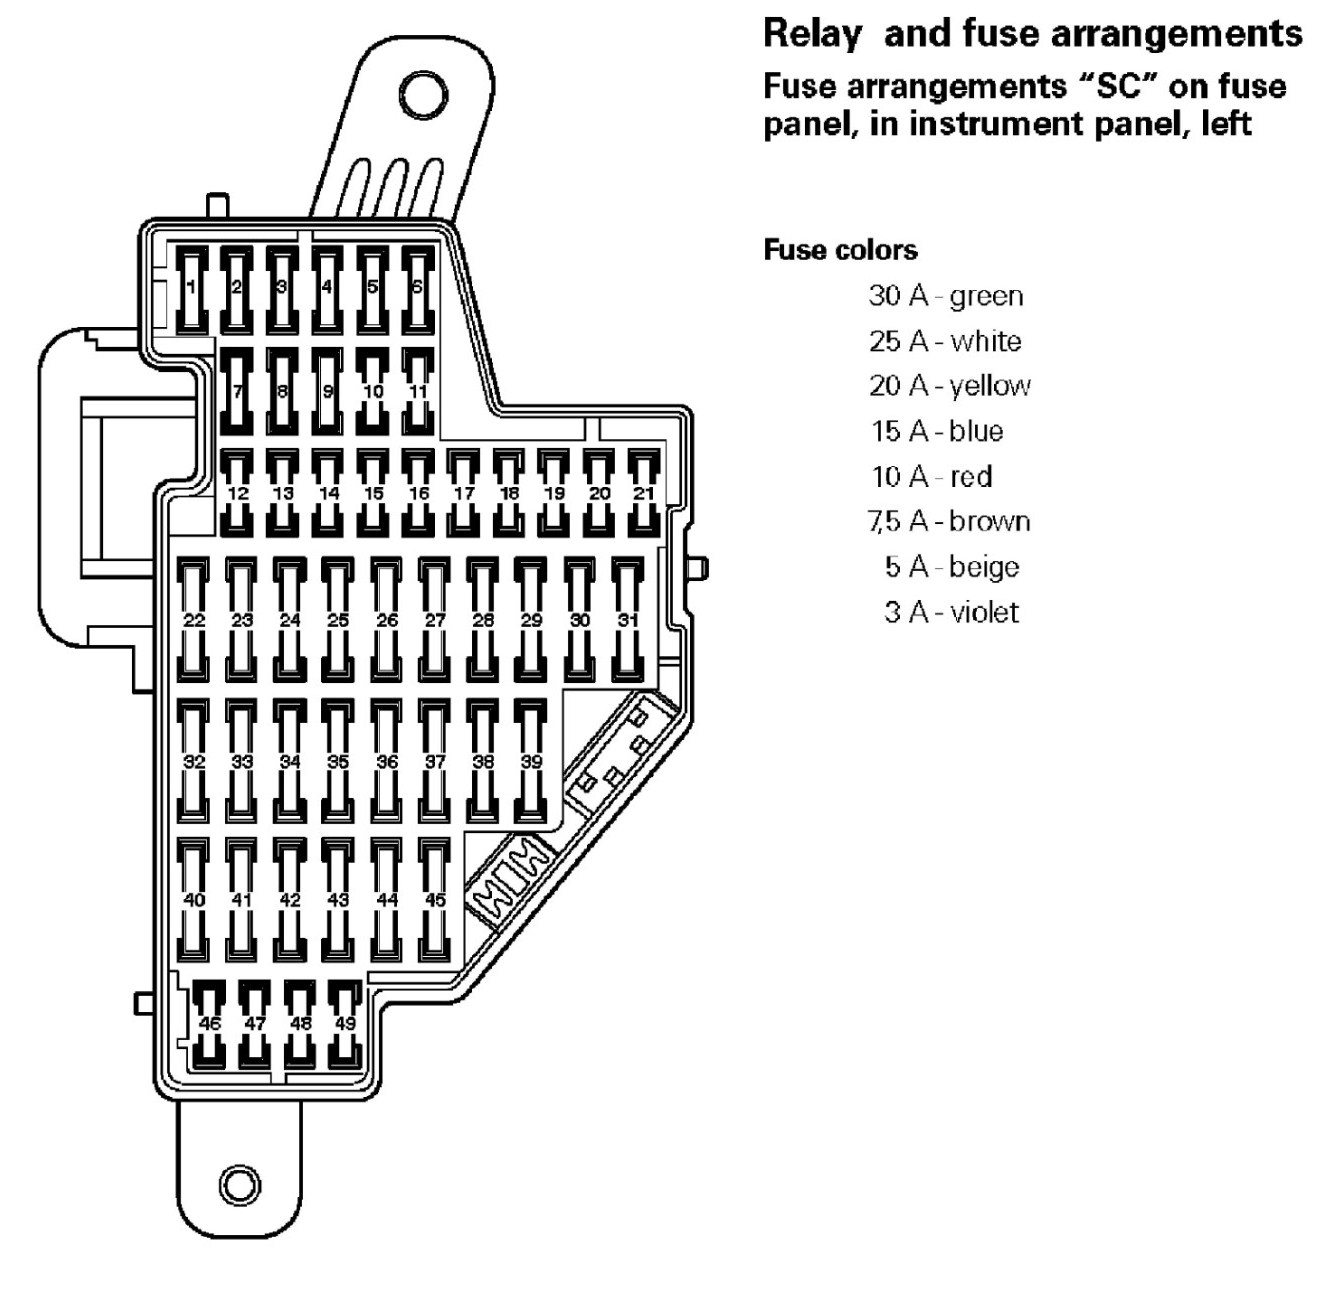 hight resolution of 06 vw jetta fuse diagram wiring diagram sheet06 jetta fuse diagram wiring diagram name 2006 vw